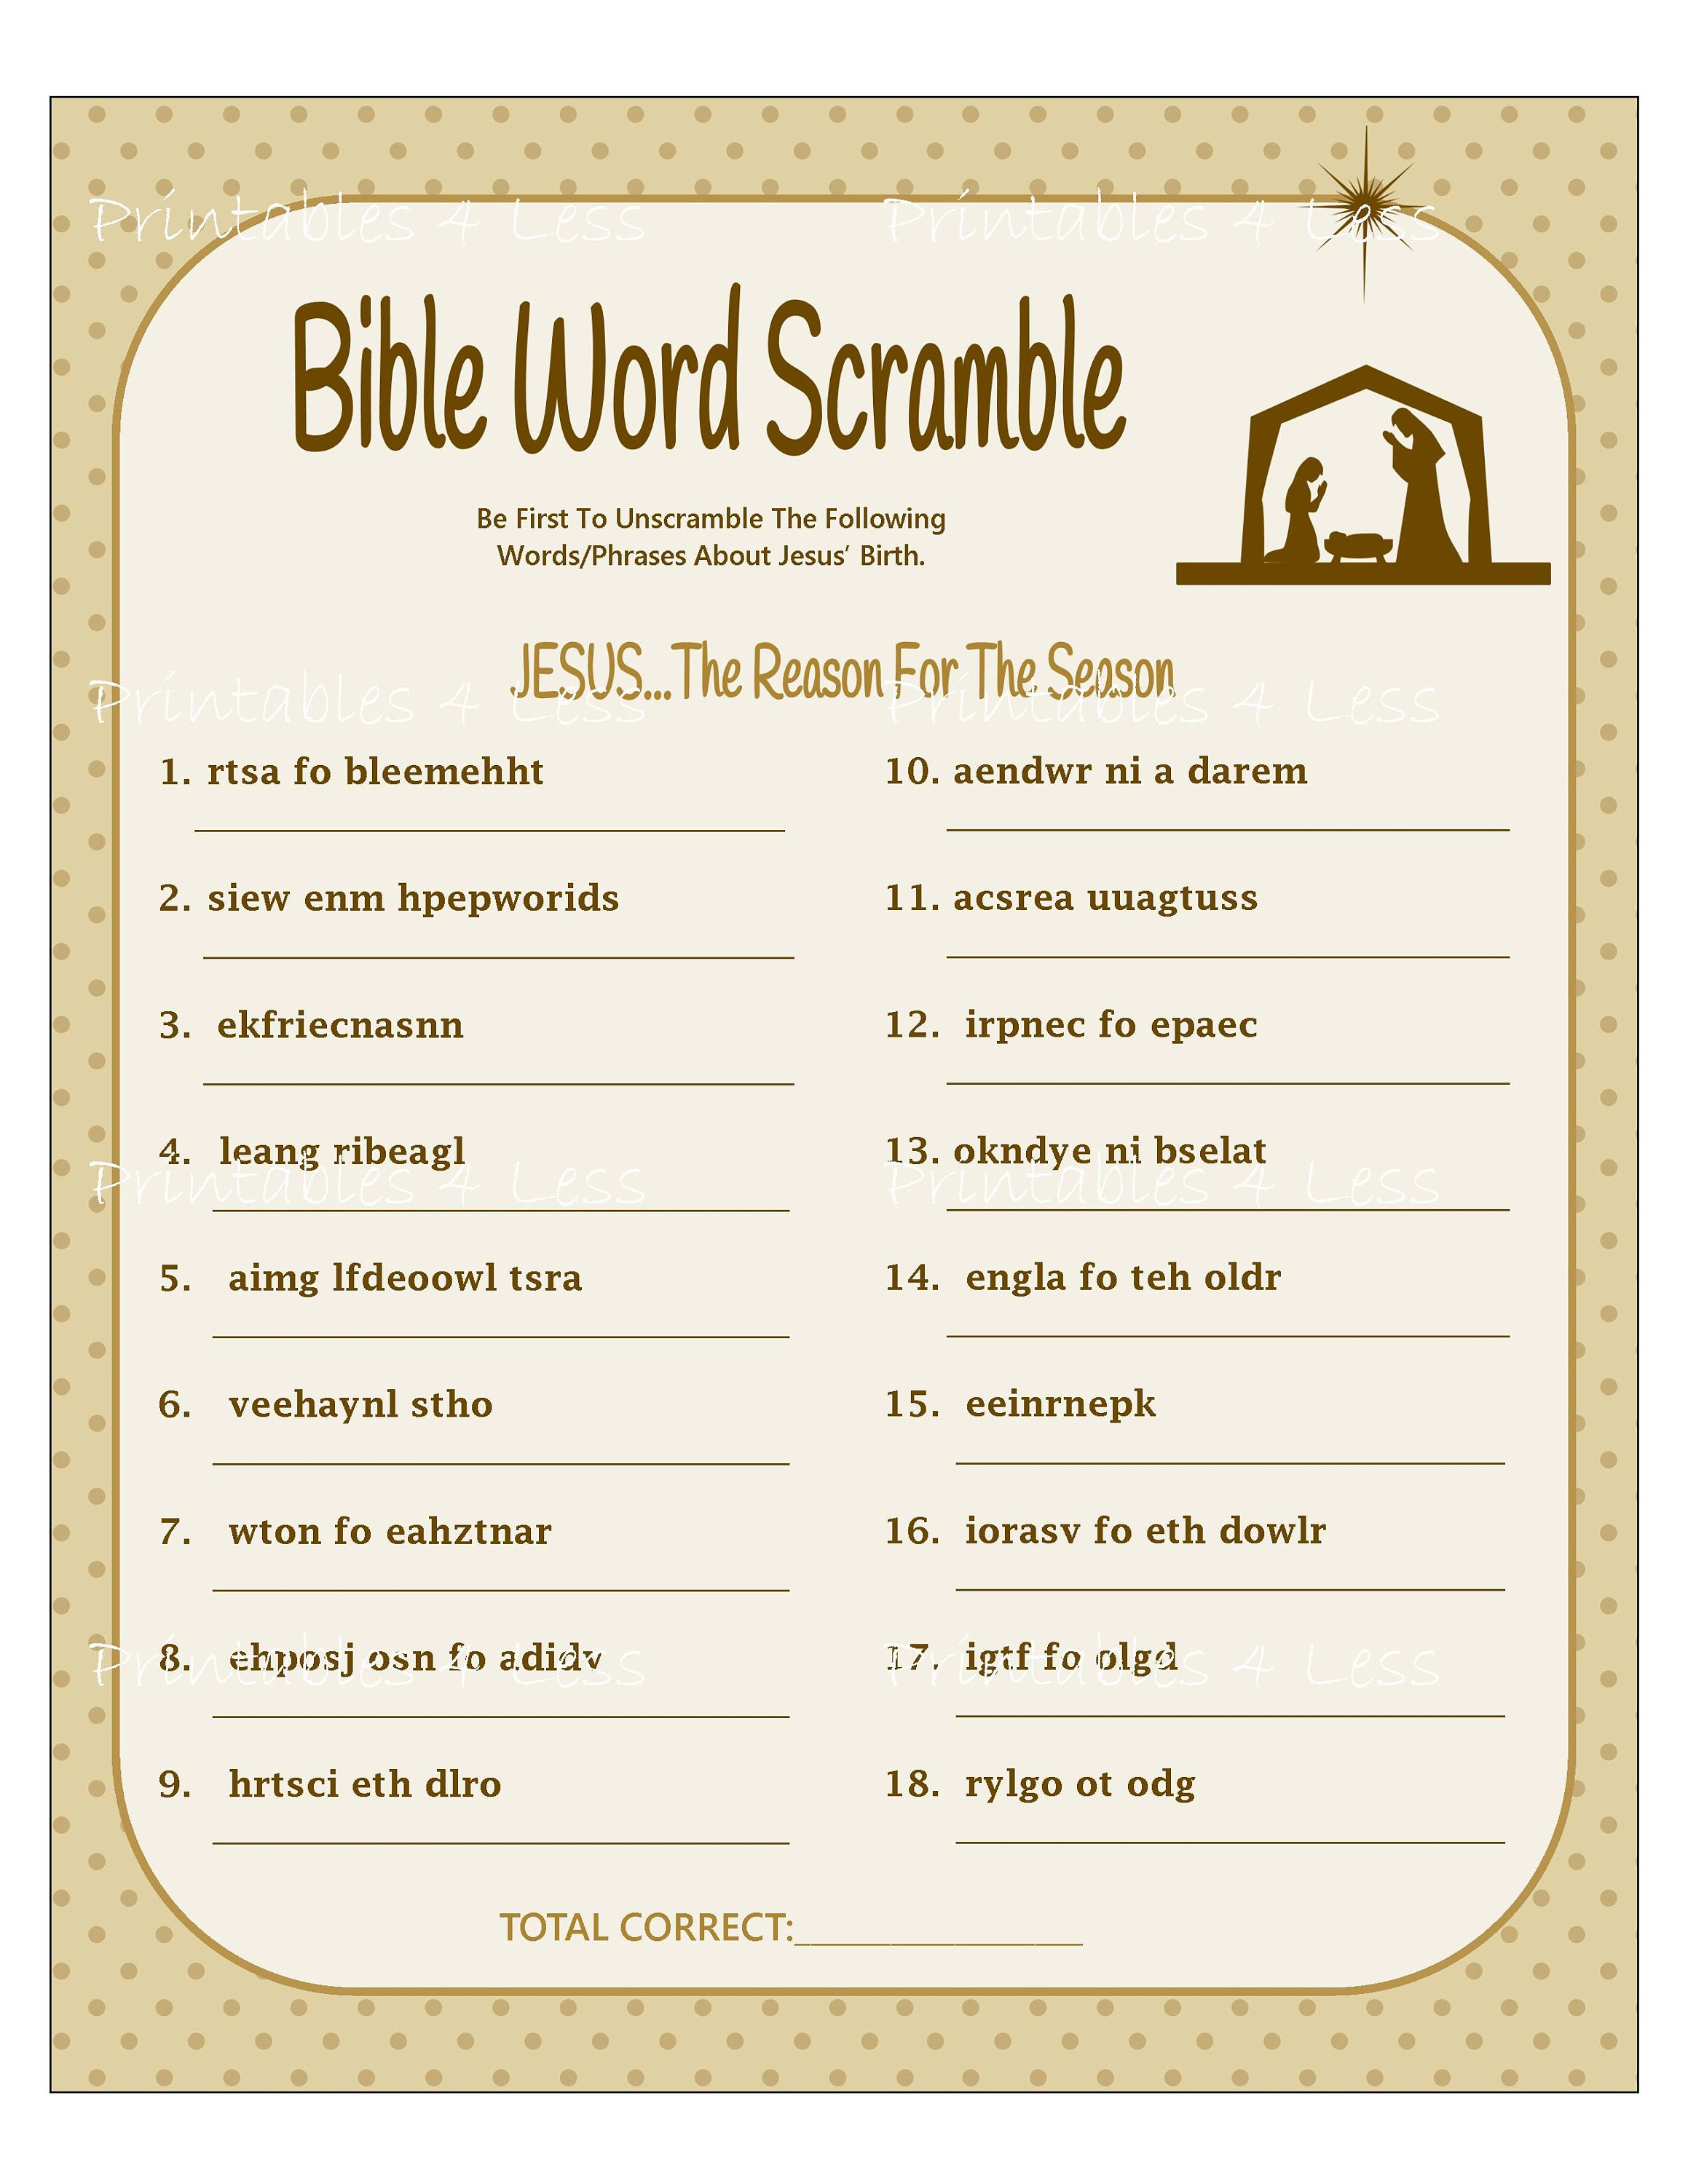 graphic about Christmas Word Scramble Printable named Bible Phrase Scramble, Printable Xmas Term Scramble, Do-it-yourself Xmas Recreation, Christian Phrase Match, Family vacation Exciting Activity - By means of Printables 4 Much less